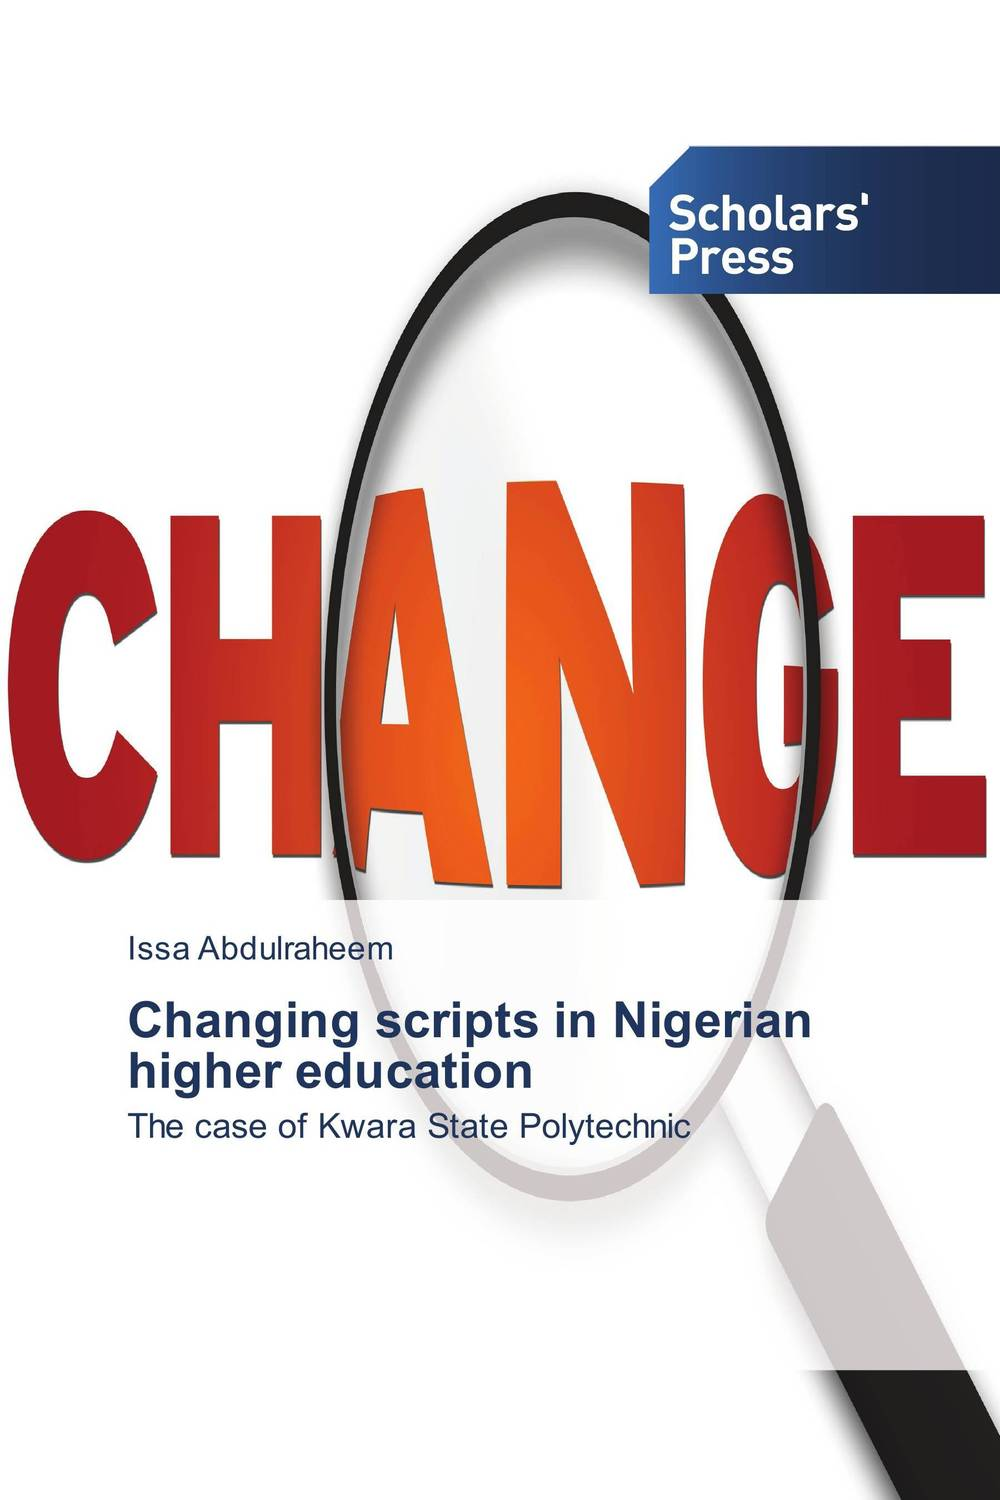 Changing scripts in Nigerian higher education scripts